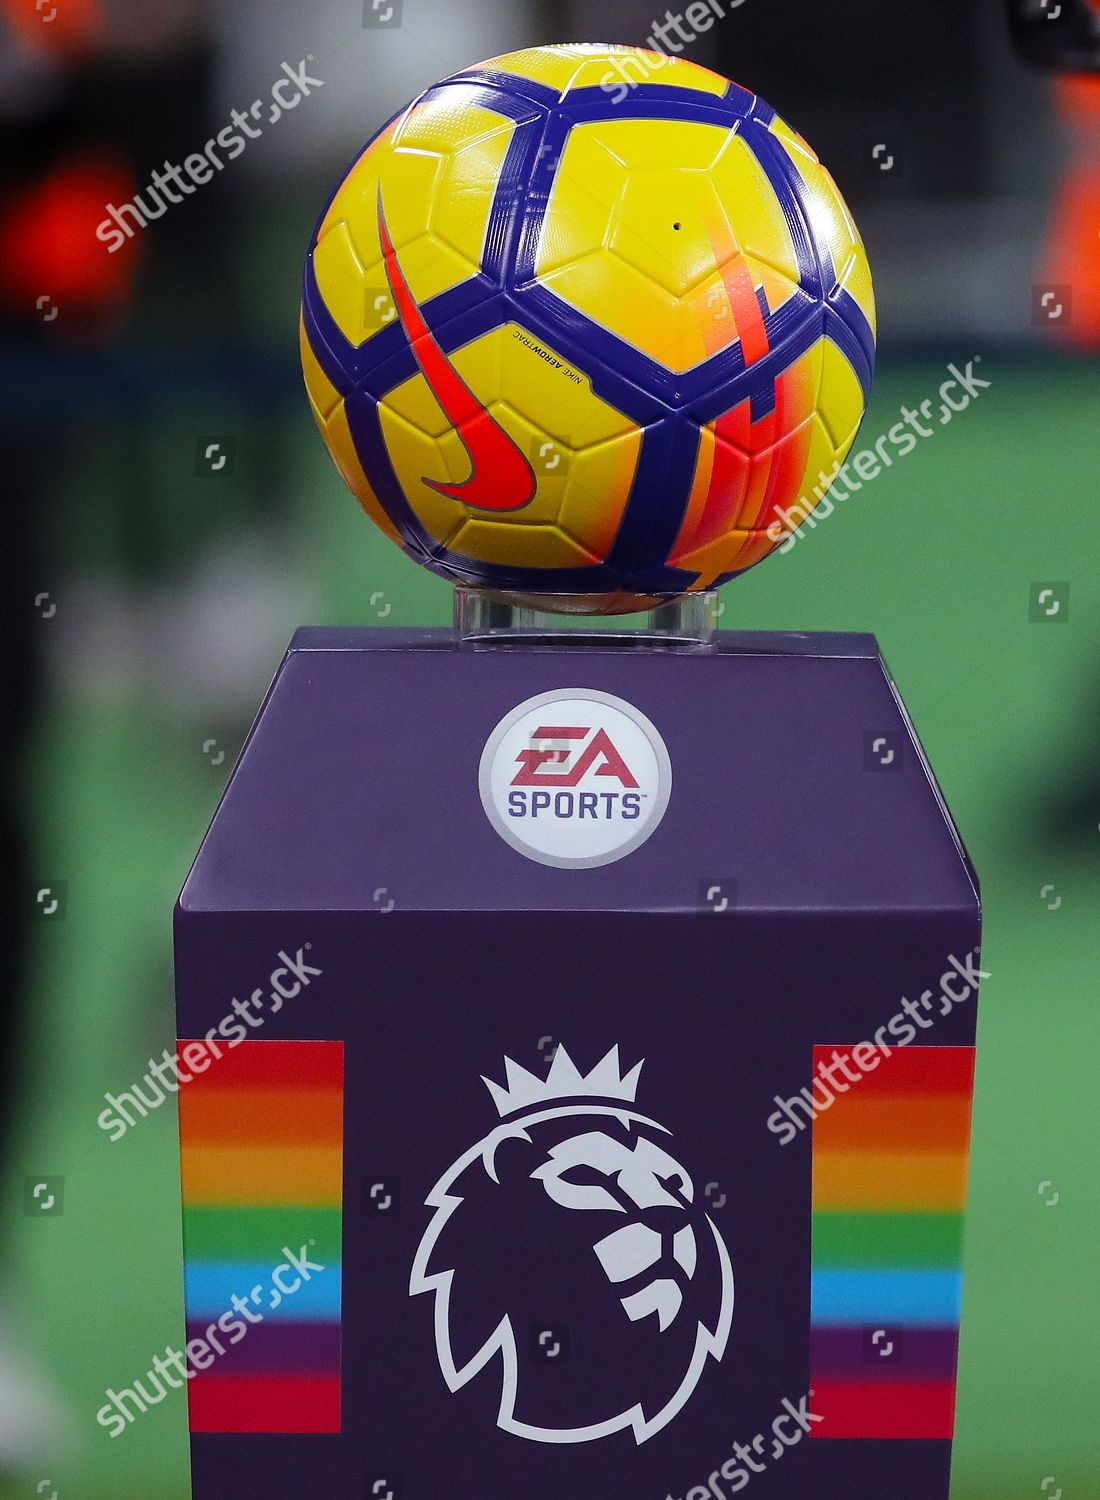 premier league match ball stand support stonewall editorial stock photo stock image shutterstock https www shutterstock com editorial image editorial west ham united v leicester city premier league football the london stadium queen elizabeth park london uk 24 nov 2017 9238154as